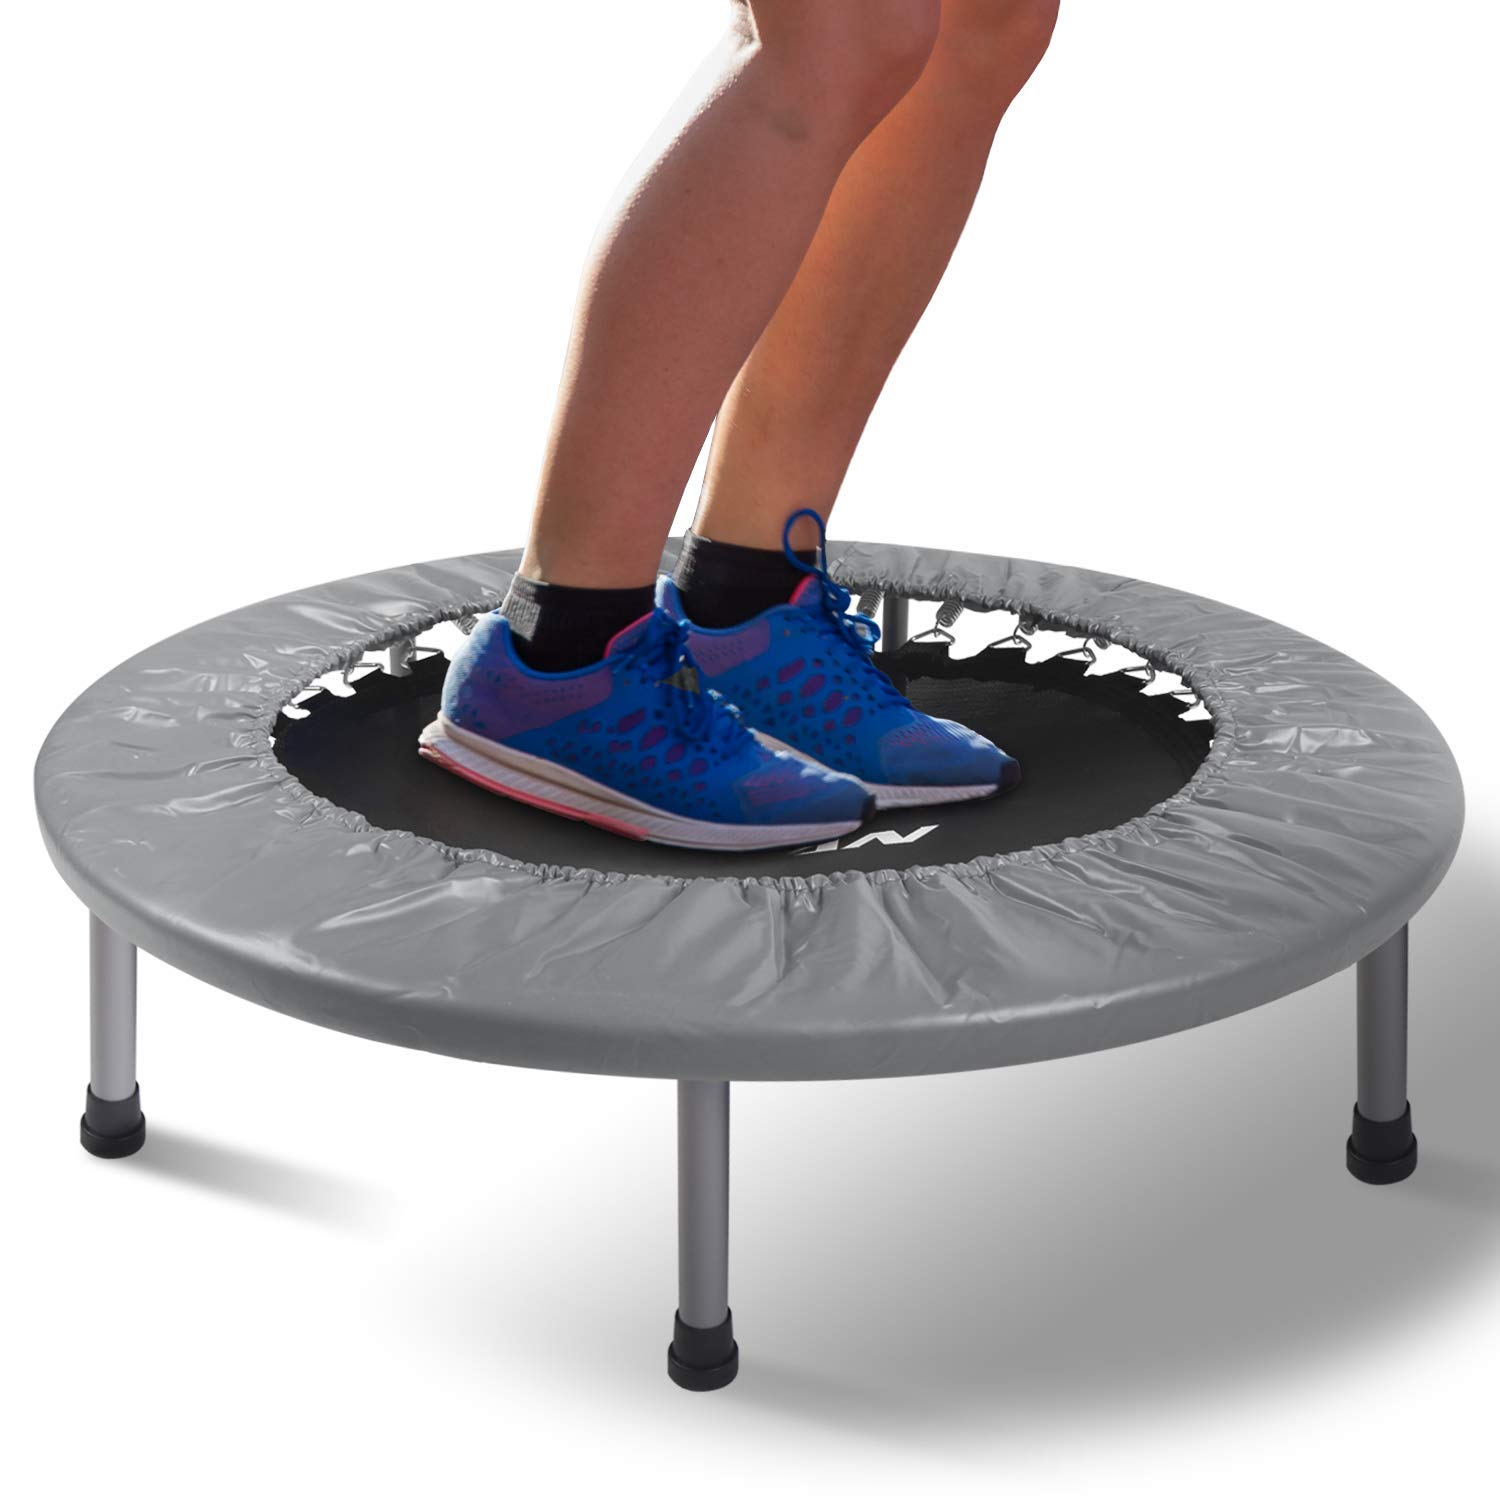 BCAN 38'' Mini Fitness Trampoline, Cardio Trainer with Safety Pad, Quiet & Stable Exercise Rebounder for Kids Adults Indoor/Garden Workout Max 300lbs - Grey